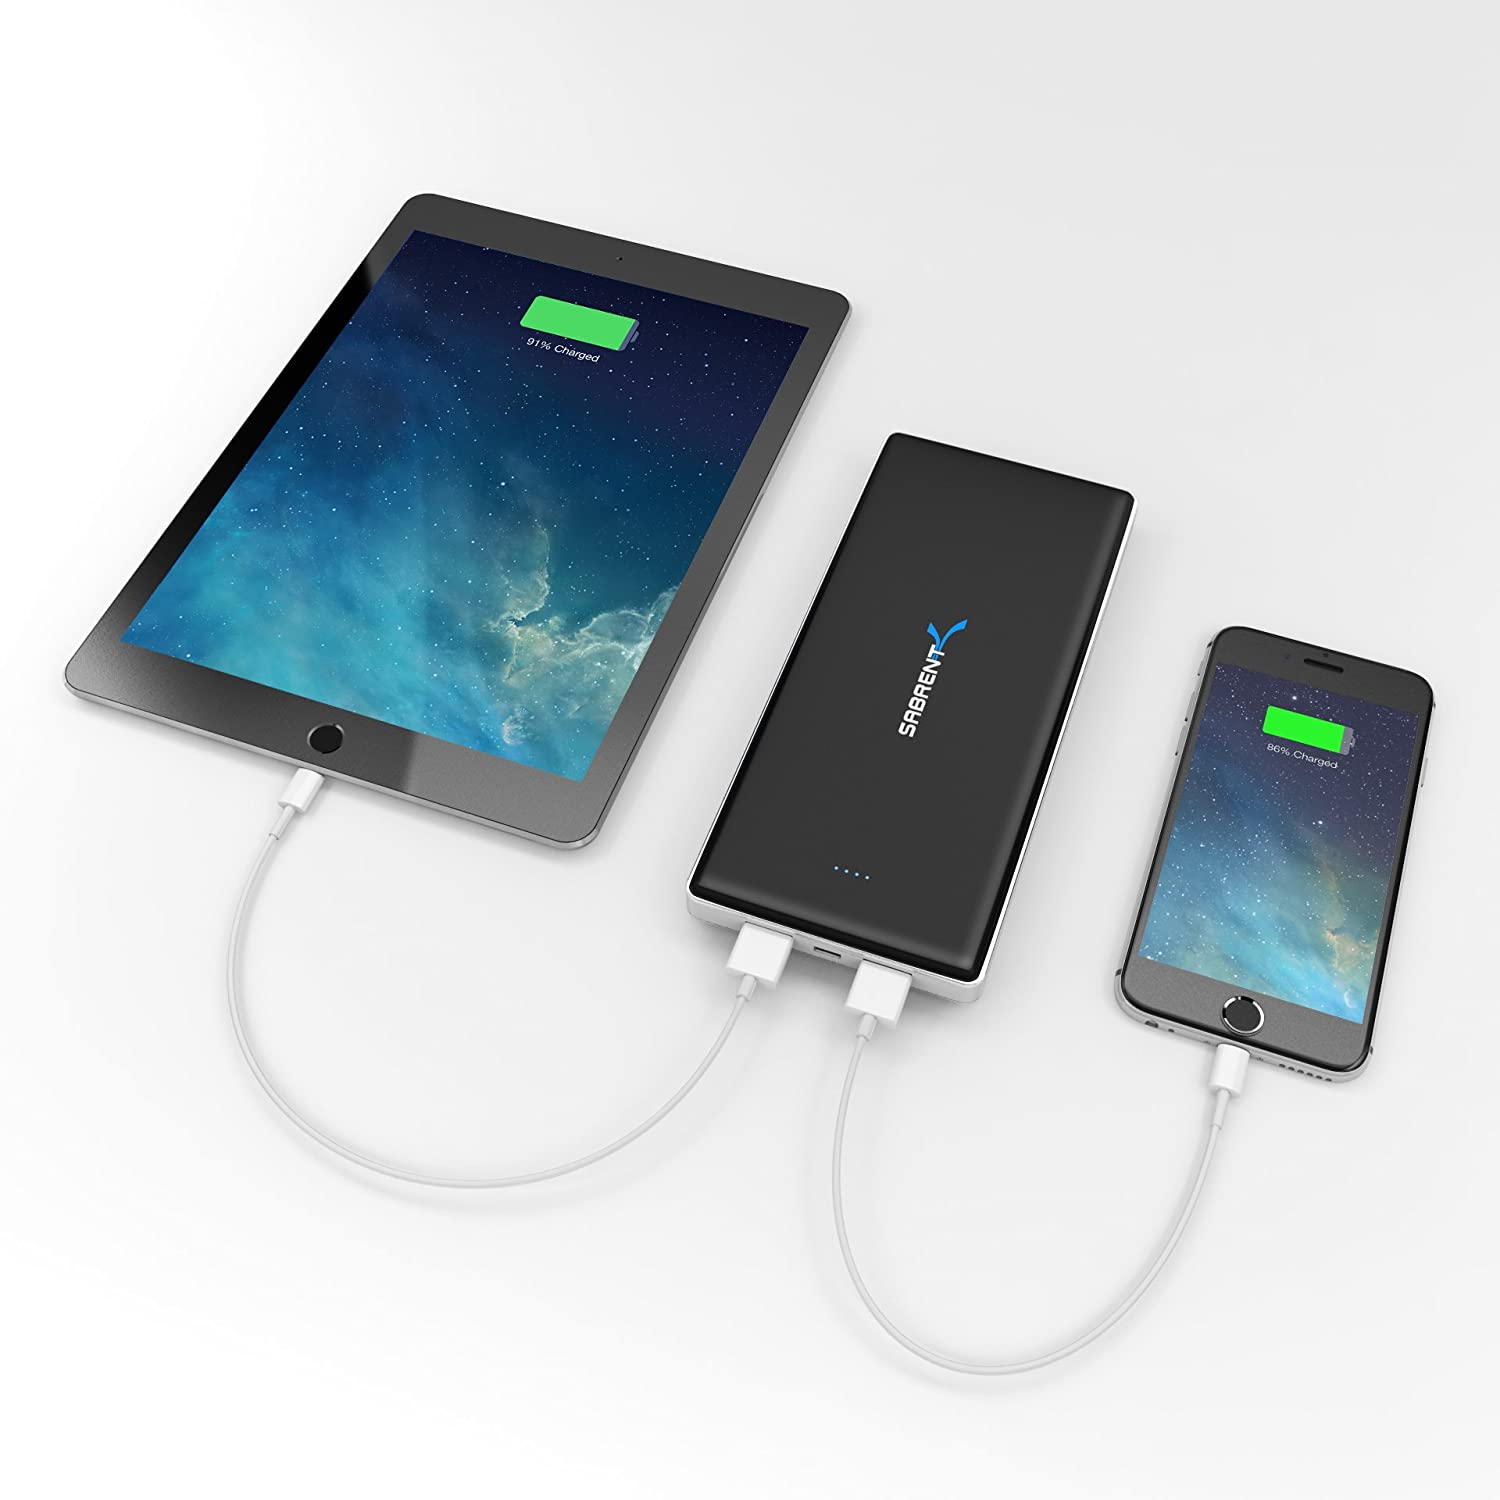 3649ee2c2a7274 Amazon.com: Sabrent 12000mAh High Capacity External Backup Battery Charger  Power Bank Charger with Dual USB Port (PB-W120): Cell Phones & Accessories